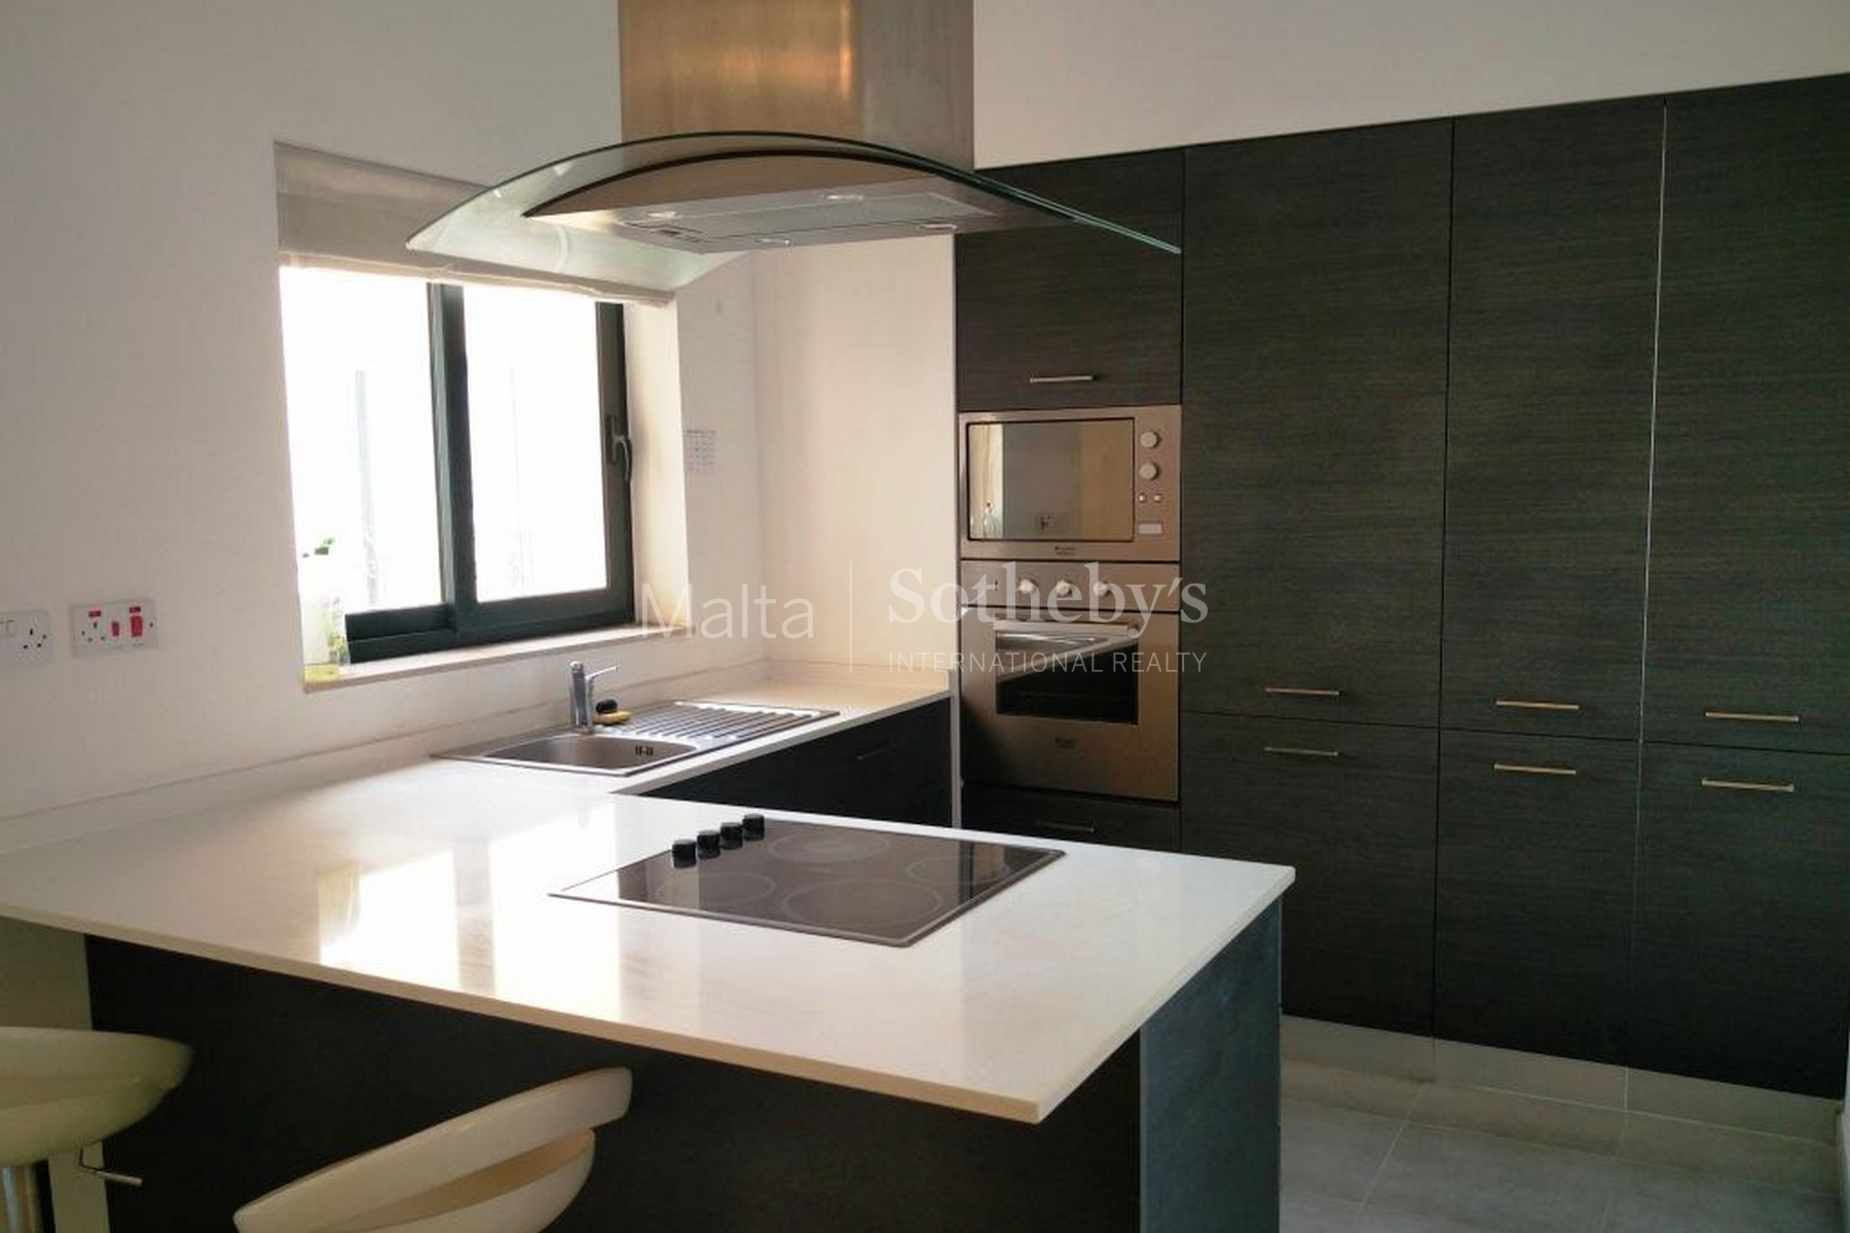 2 bed Apartment For Rent in Floriana, Floriana - thumb 3